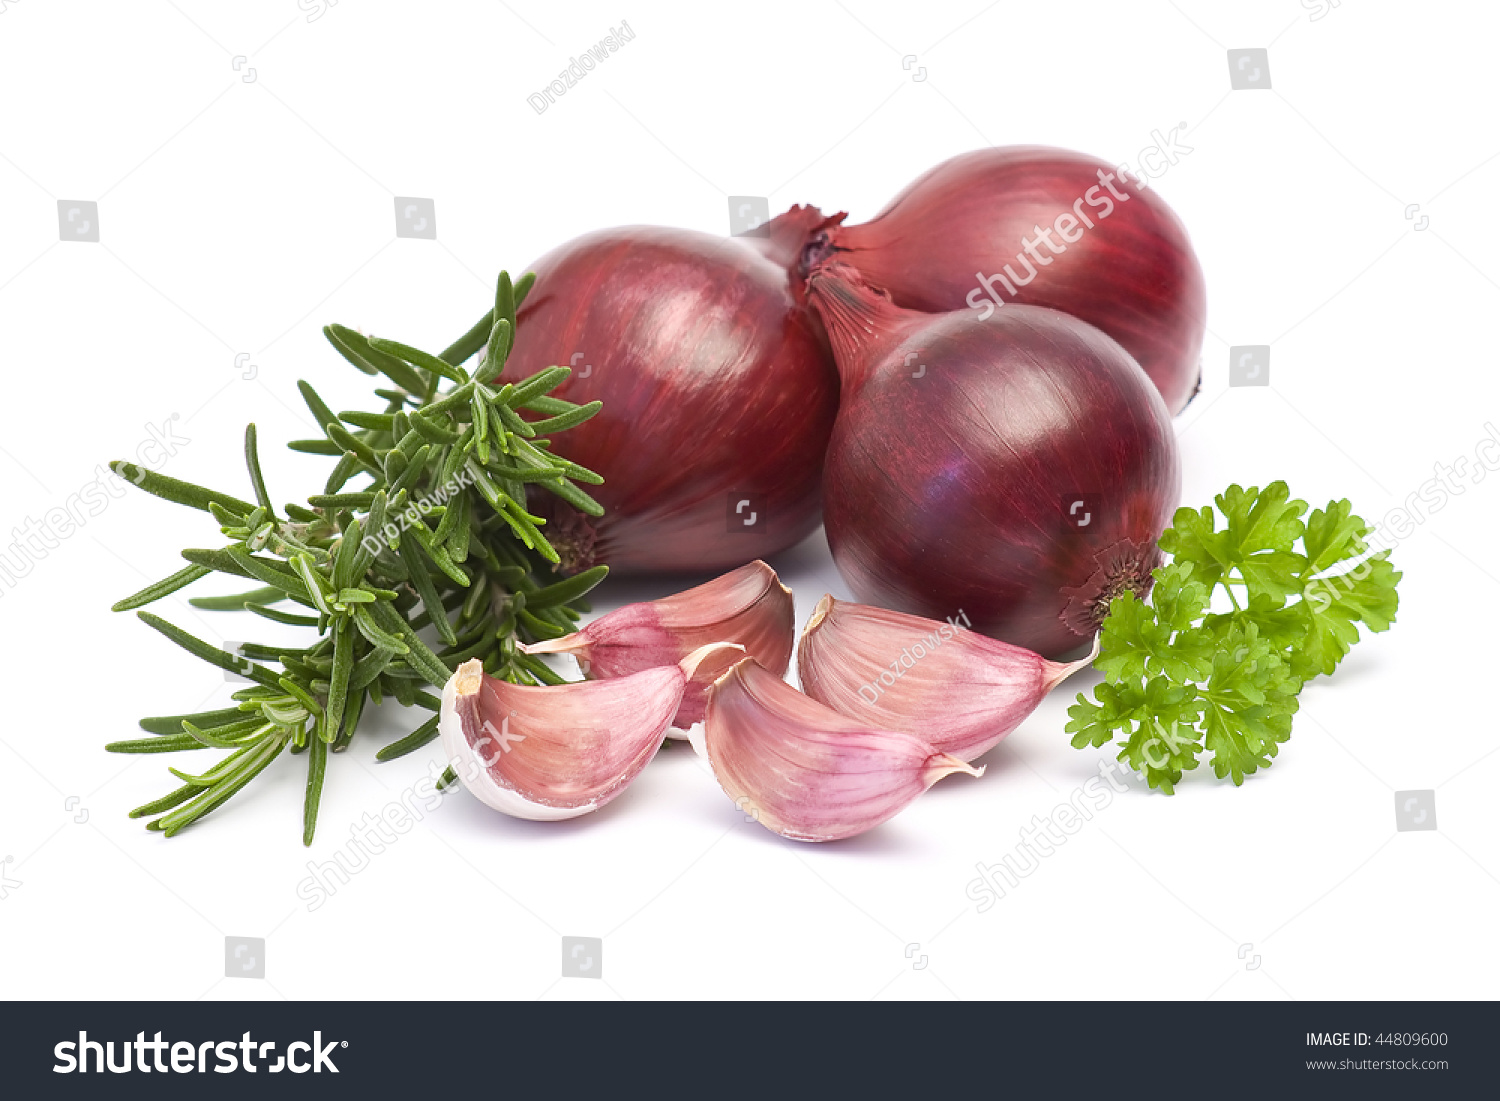 Red Onion, Garlic And Fresh Rosemary Stock Photo 44809600 ...